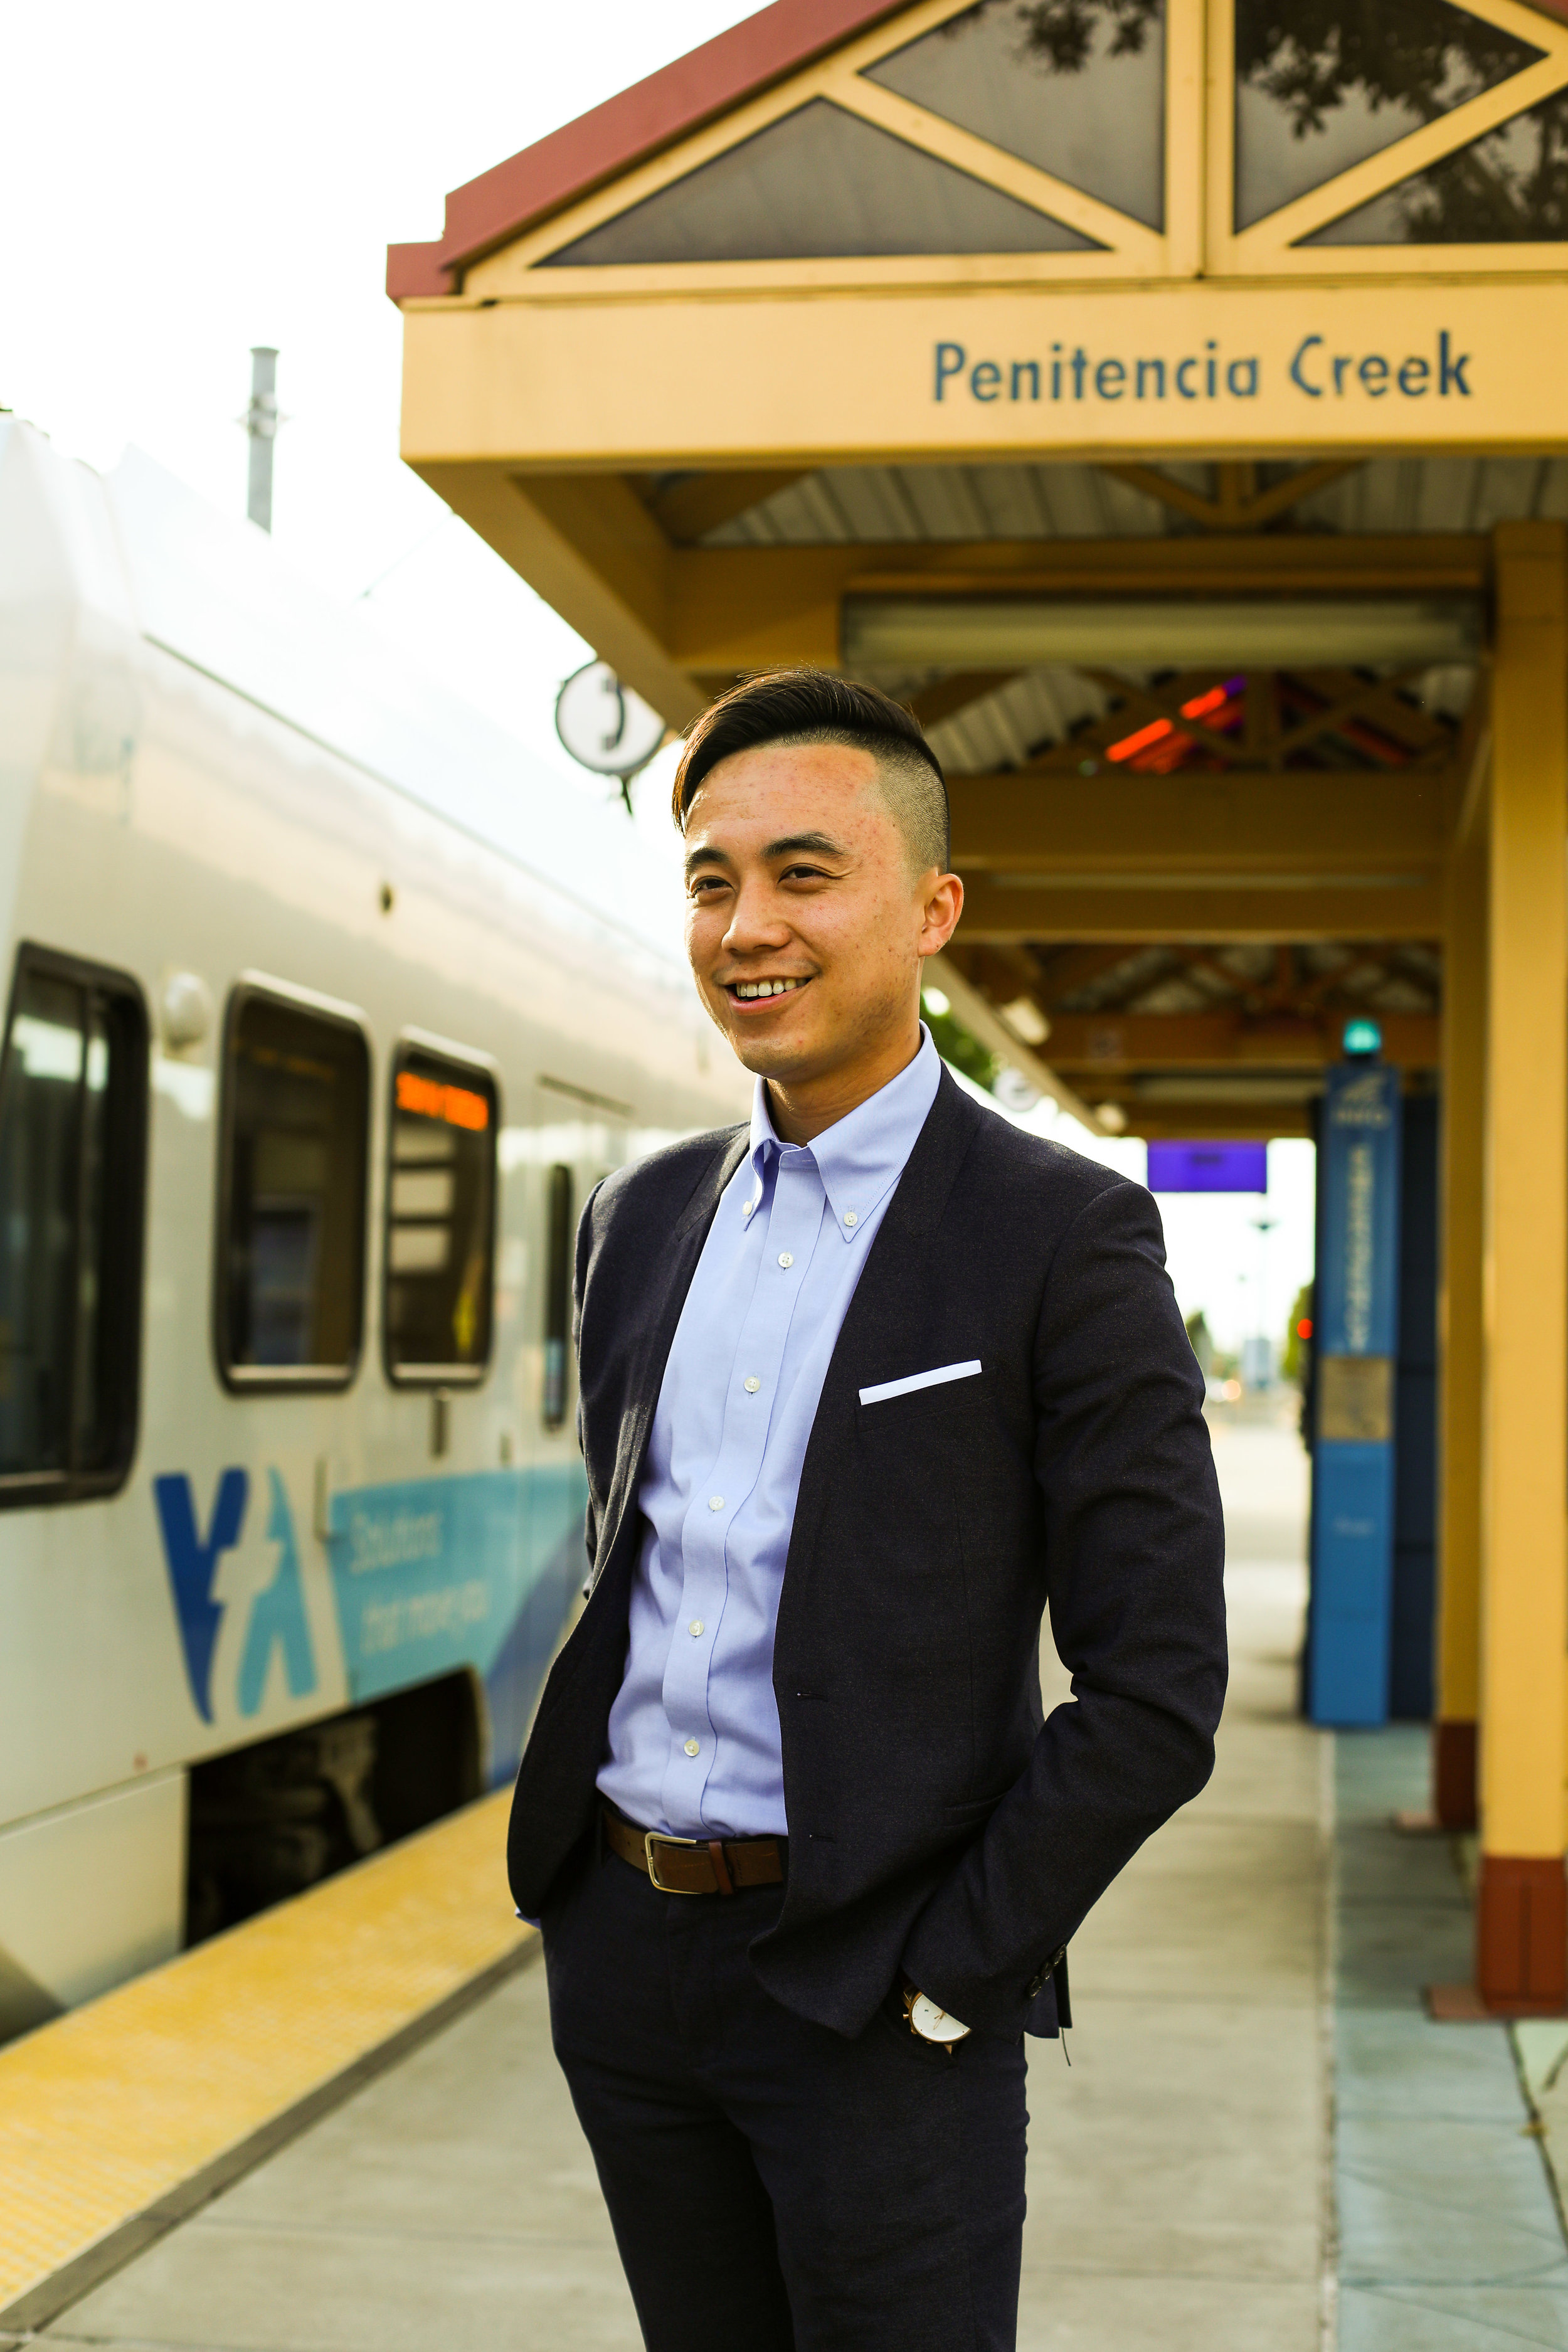 The youngest candidate by far in his election, South Bay native Alex Lee is running for Assemblymember of his home district. After serving as President of UC Davis, he hopes to continue fighting for disenfranchised communities by tackling California's housing issues. -